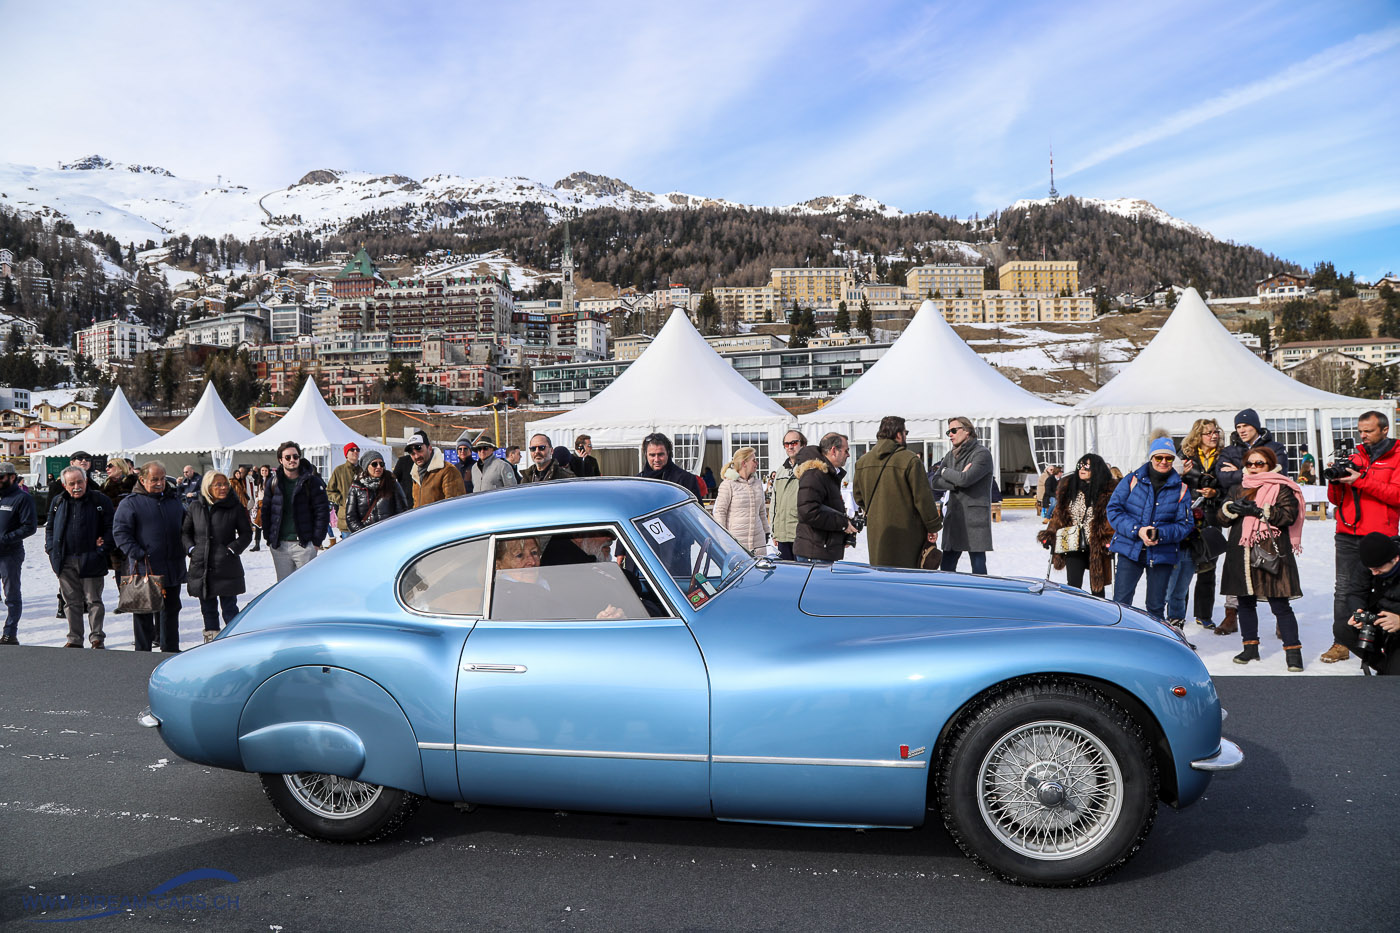 Fiat 8V am 'The Ice' in St. Moritz 2019